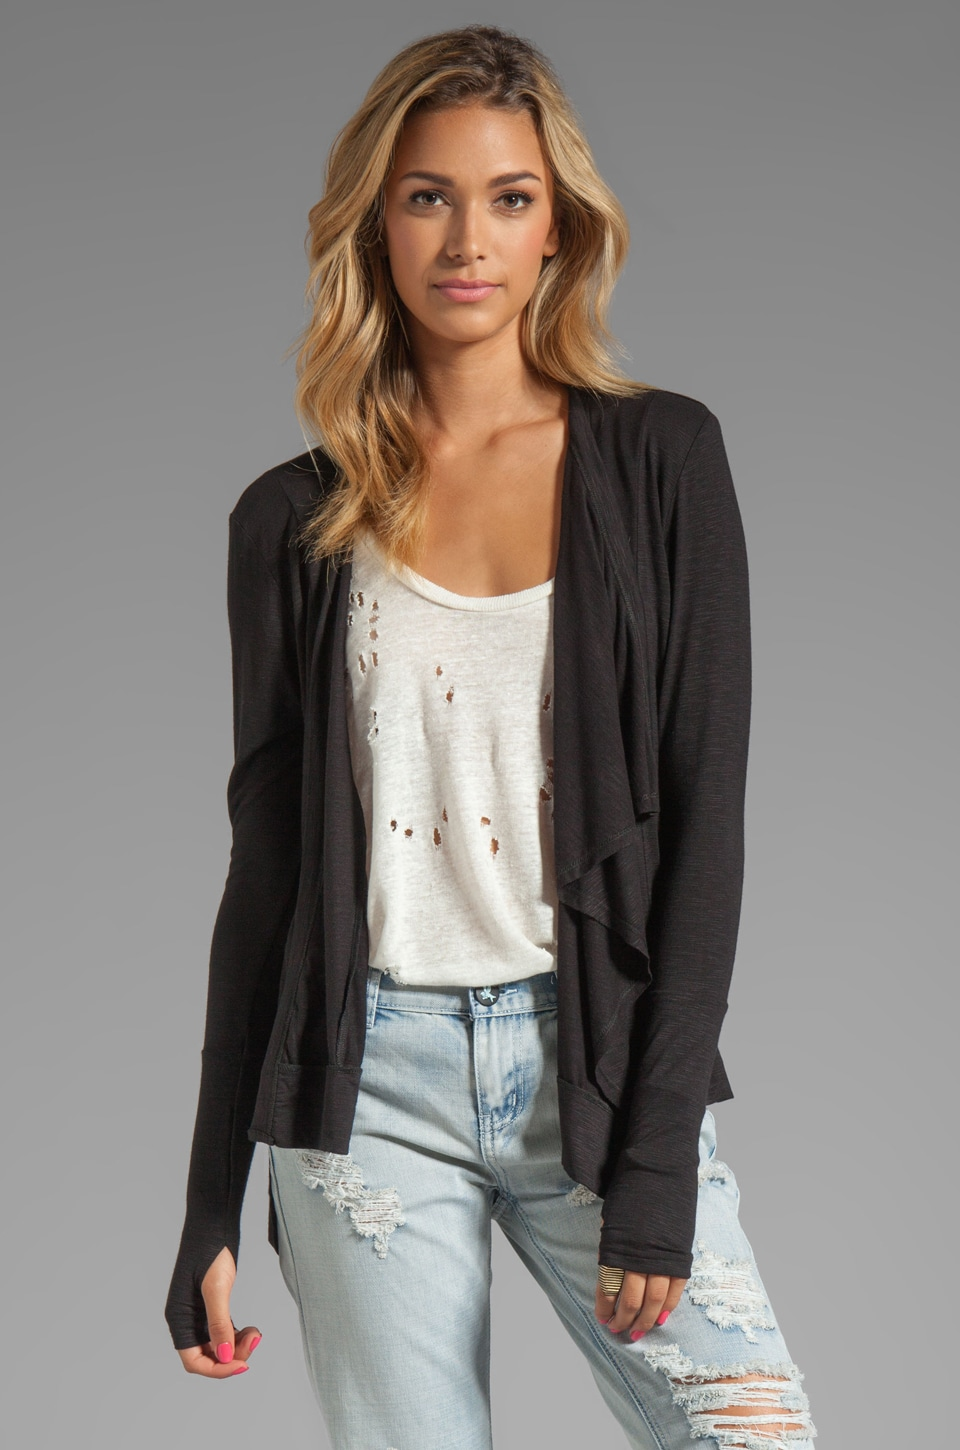 dolan Classic Slub Hi-Low Cardigan in Black